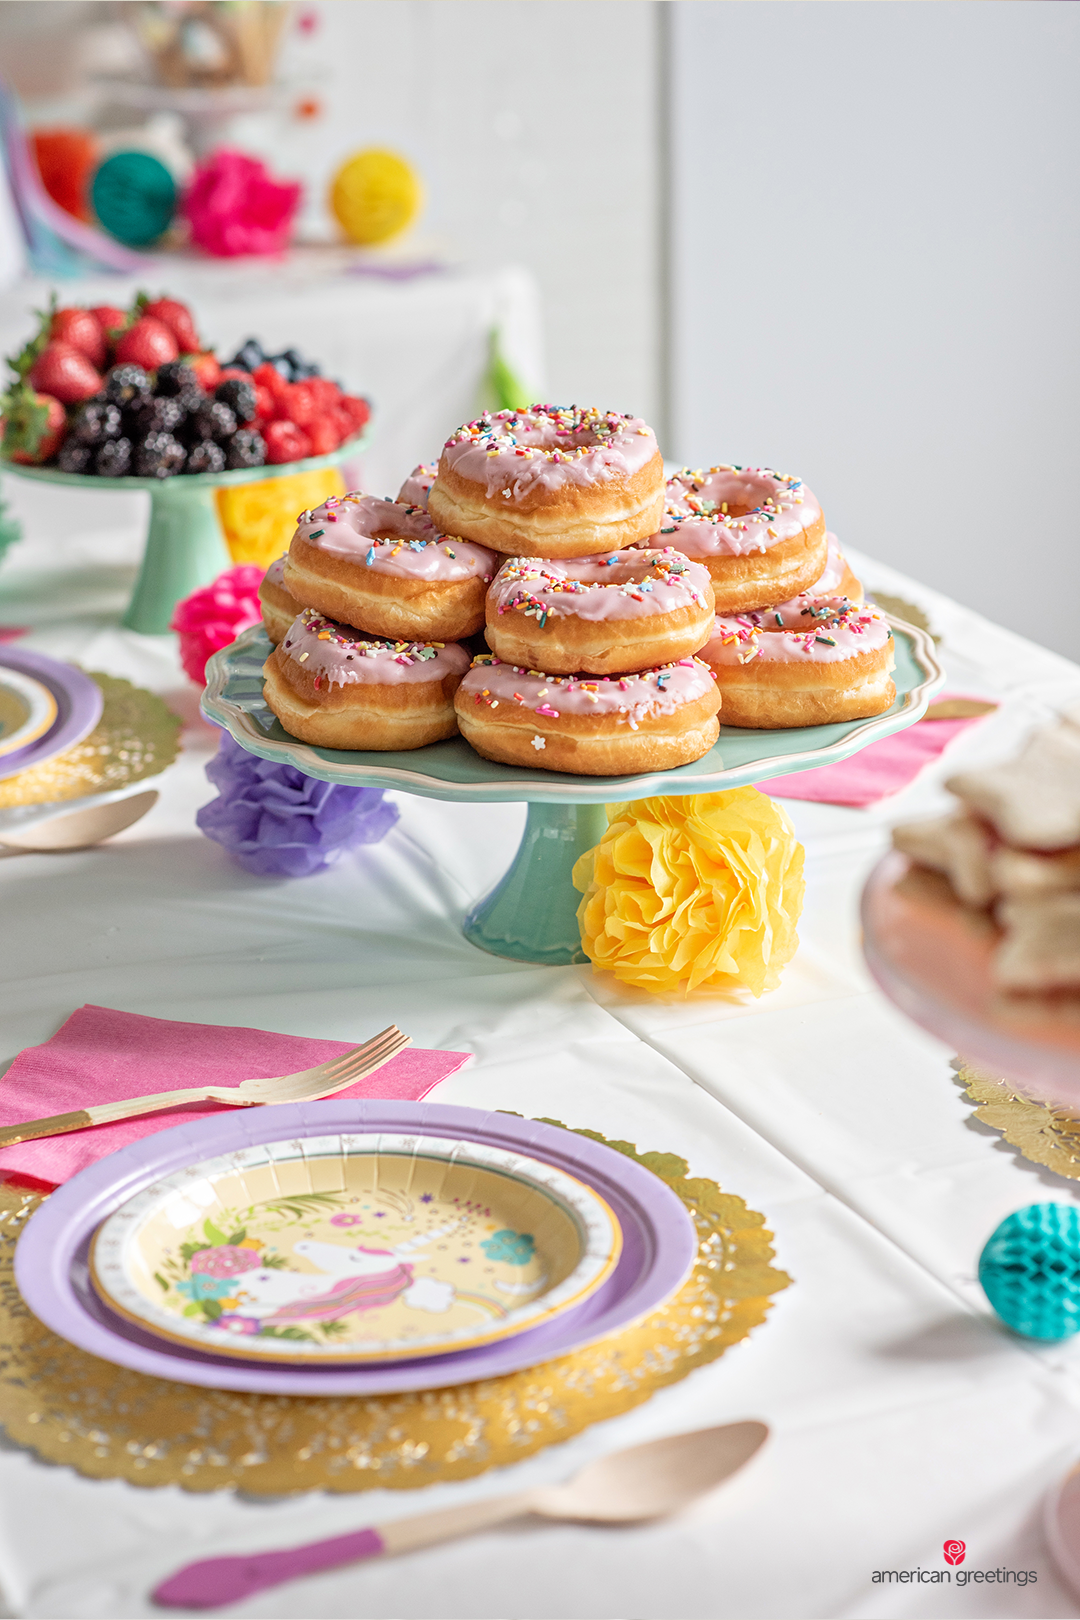 Sprinkled donuts near a fresh fruit plate on a dinner table setup.